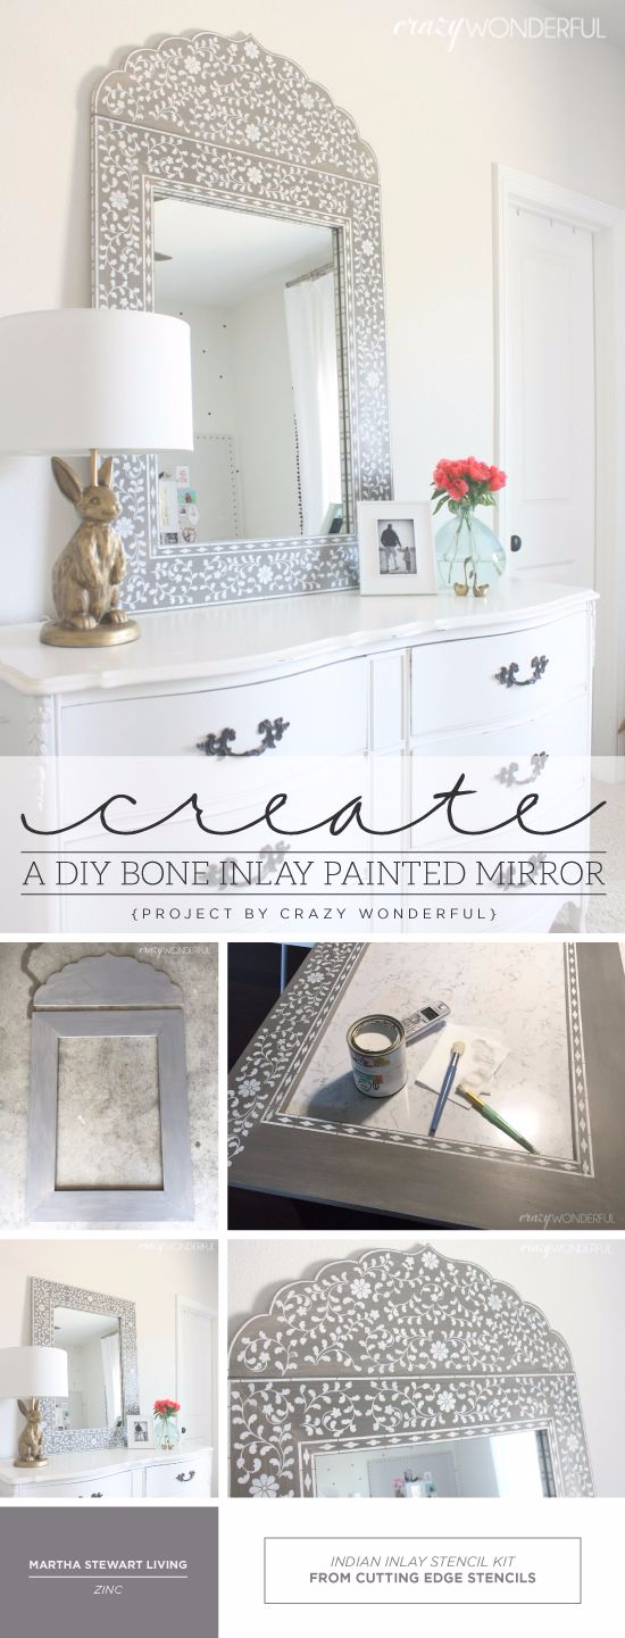 DIY Mirrors - DIY Bone Inlay Painted Mirror - Best Do It Yourself Mirror Projects and Cool Crafts Using Mirrors - Home Decor, Bedroom Decor and Bath Ideas - Step By Step Tutorials With Instructions